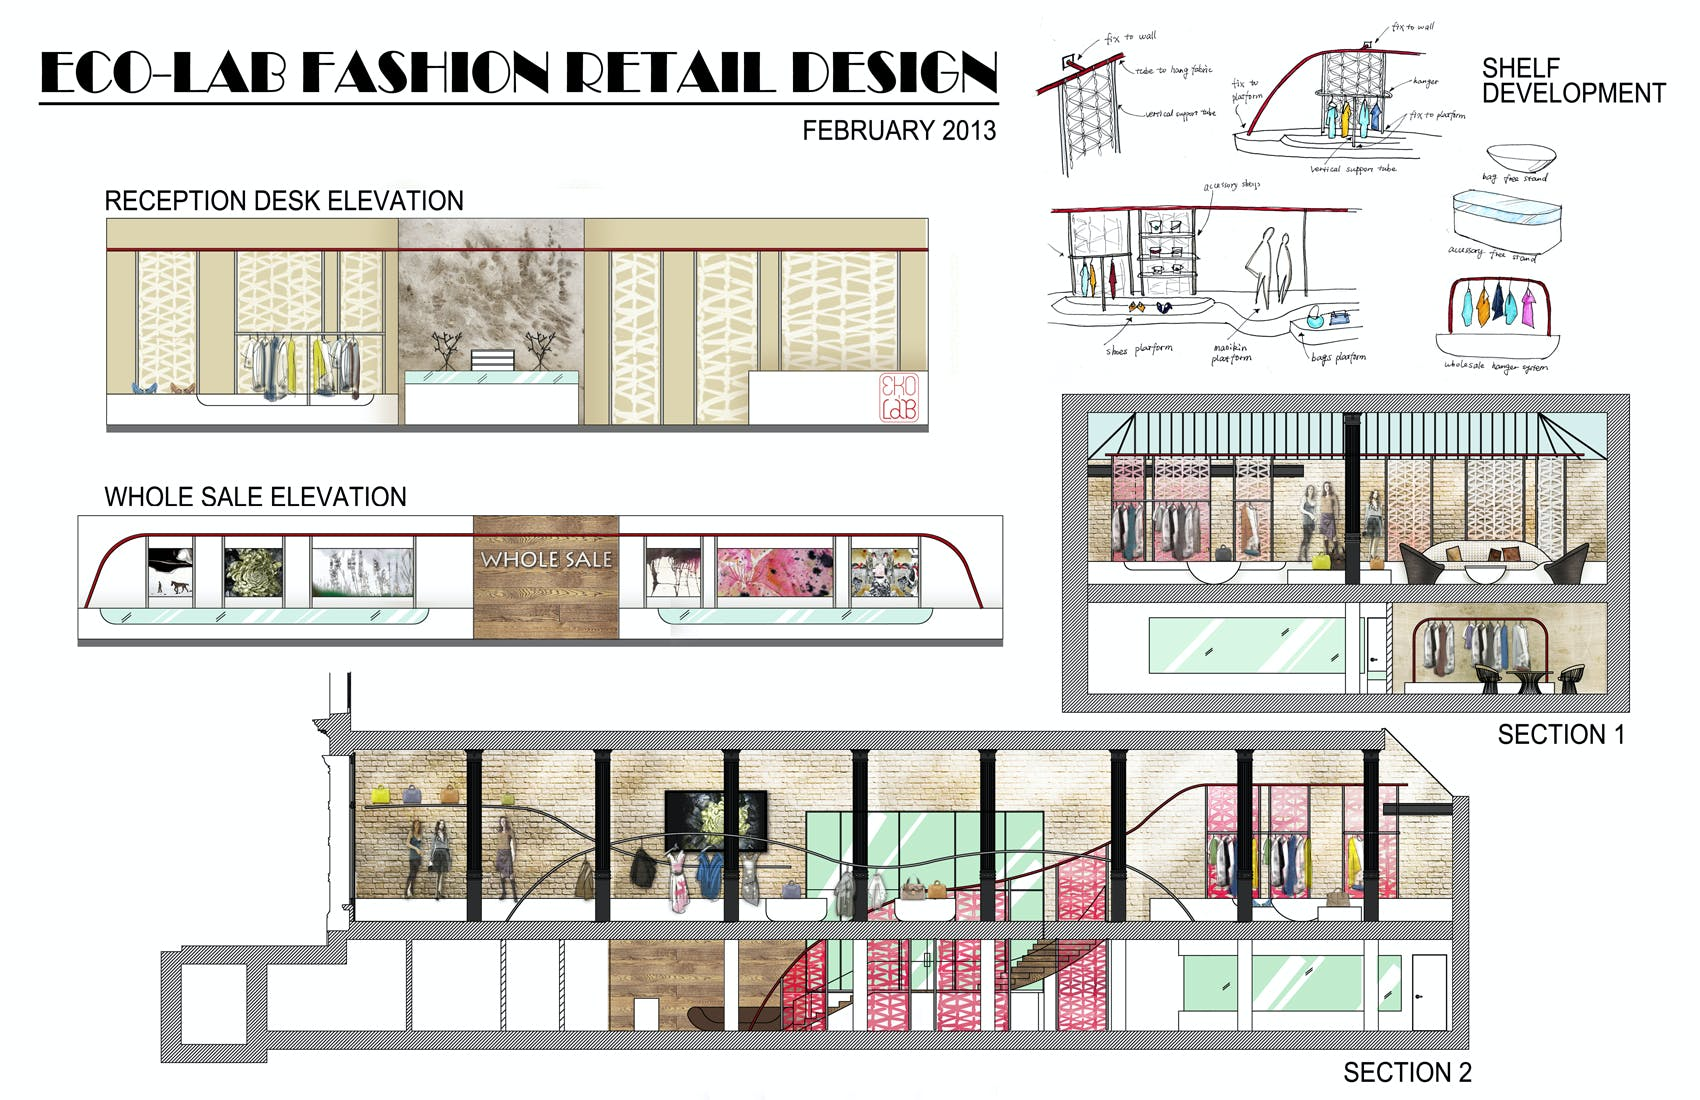 Eco lab retail design yingru huang archinect for Interior design recruitment agency new york